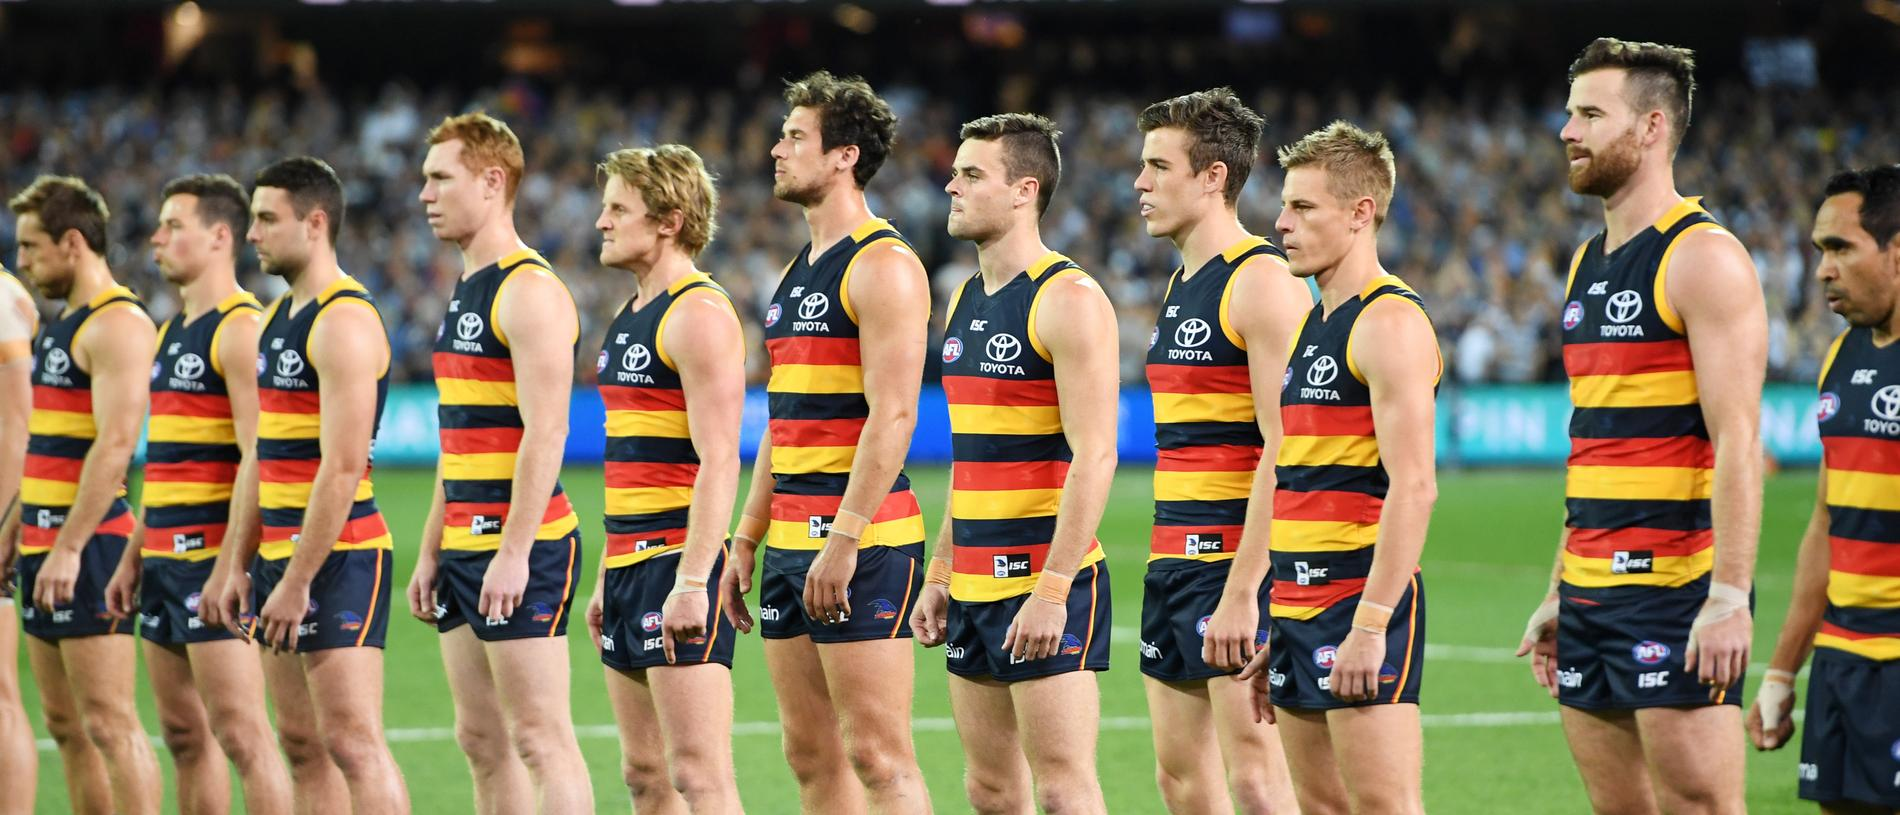 The Crows line up for the national anthem before the Adelaide Crows and Geelong Cats Men's AFL First Preliminary Final at the Adelaide Oval in Adelaide, Friday, September 22, 2017. (AAP Image/Tracey Nearmy) NO ARCHIVING, EDITORIAL USE ONLY